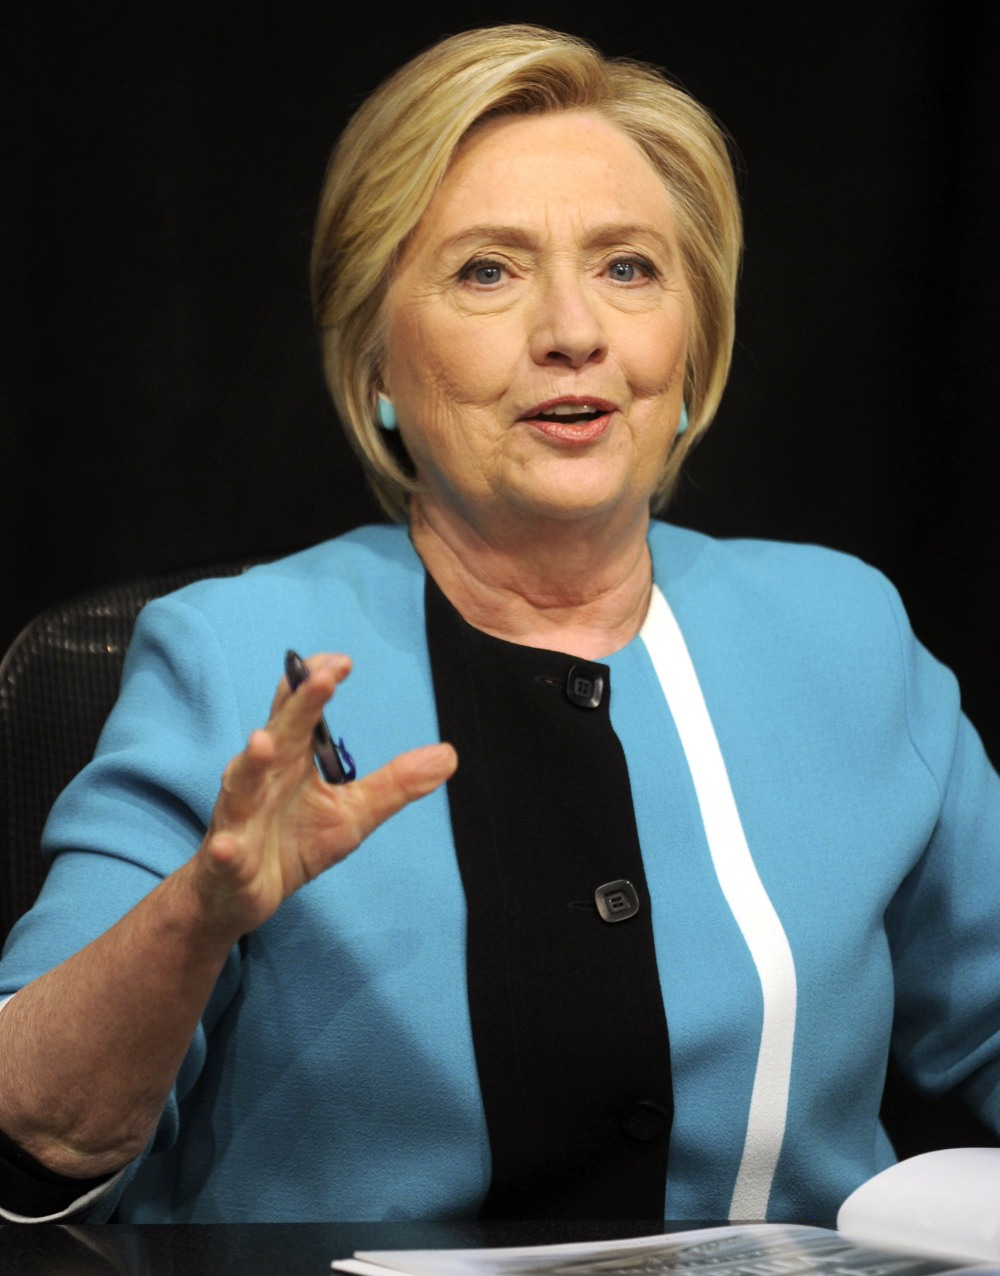 Hillary Clinton signs copies of her book 'What Happened' at Barnes & Noble 33 E 17th St. New York